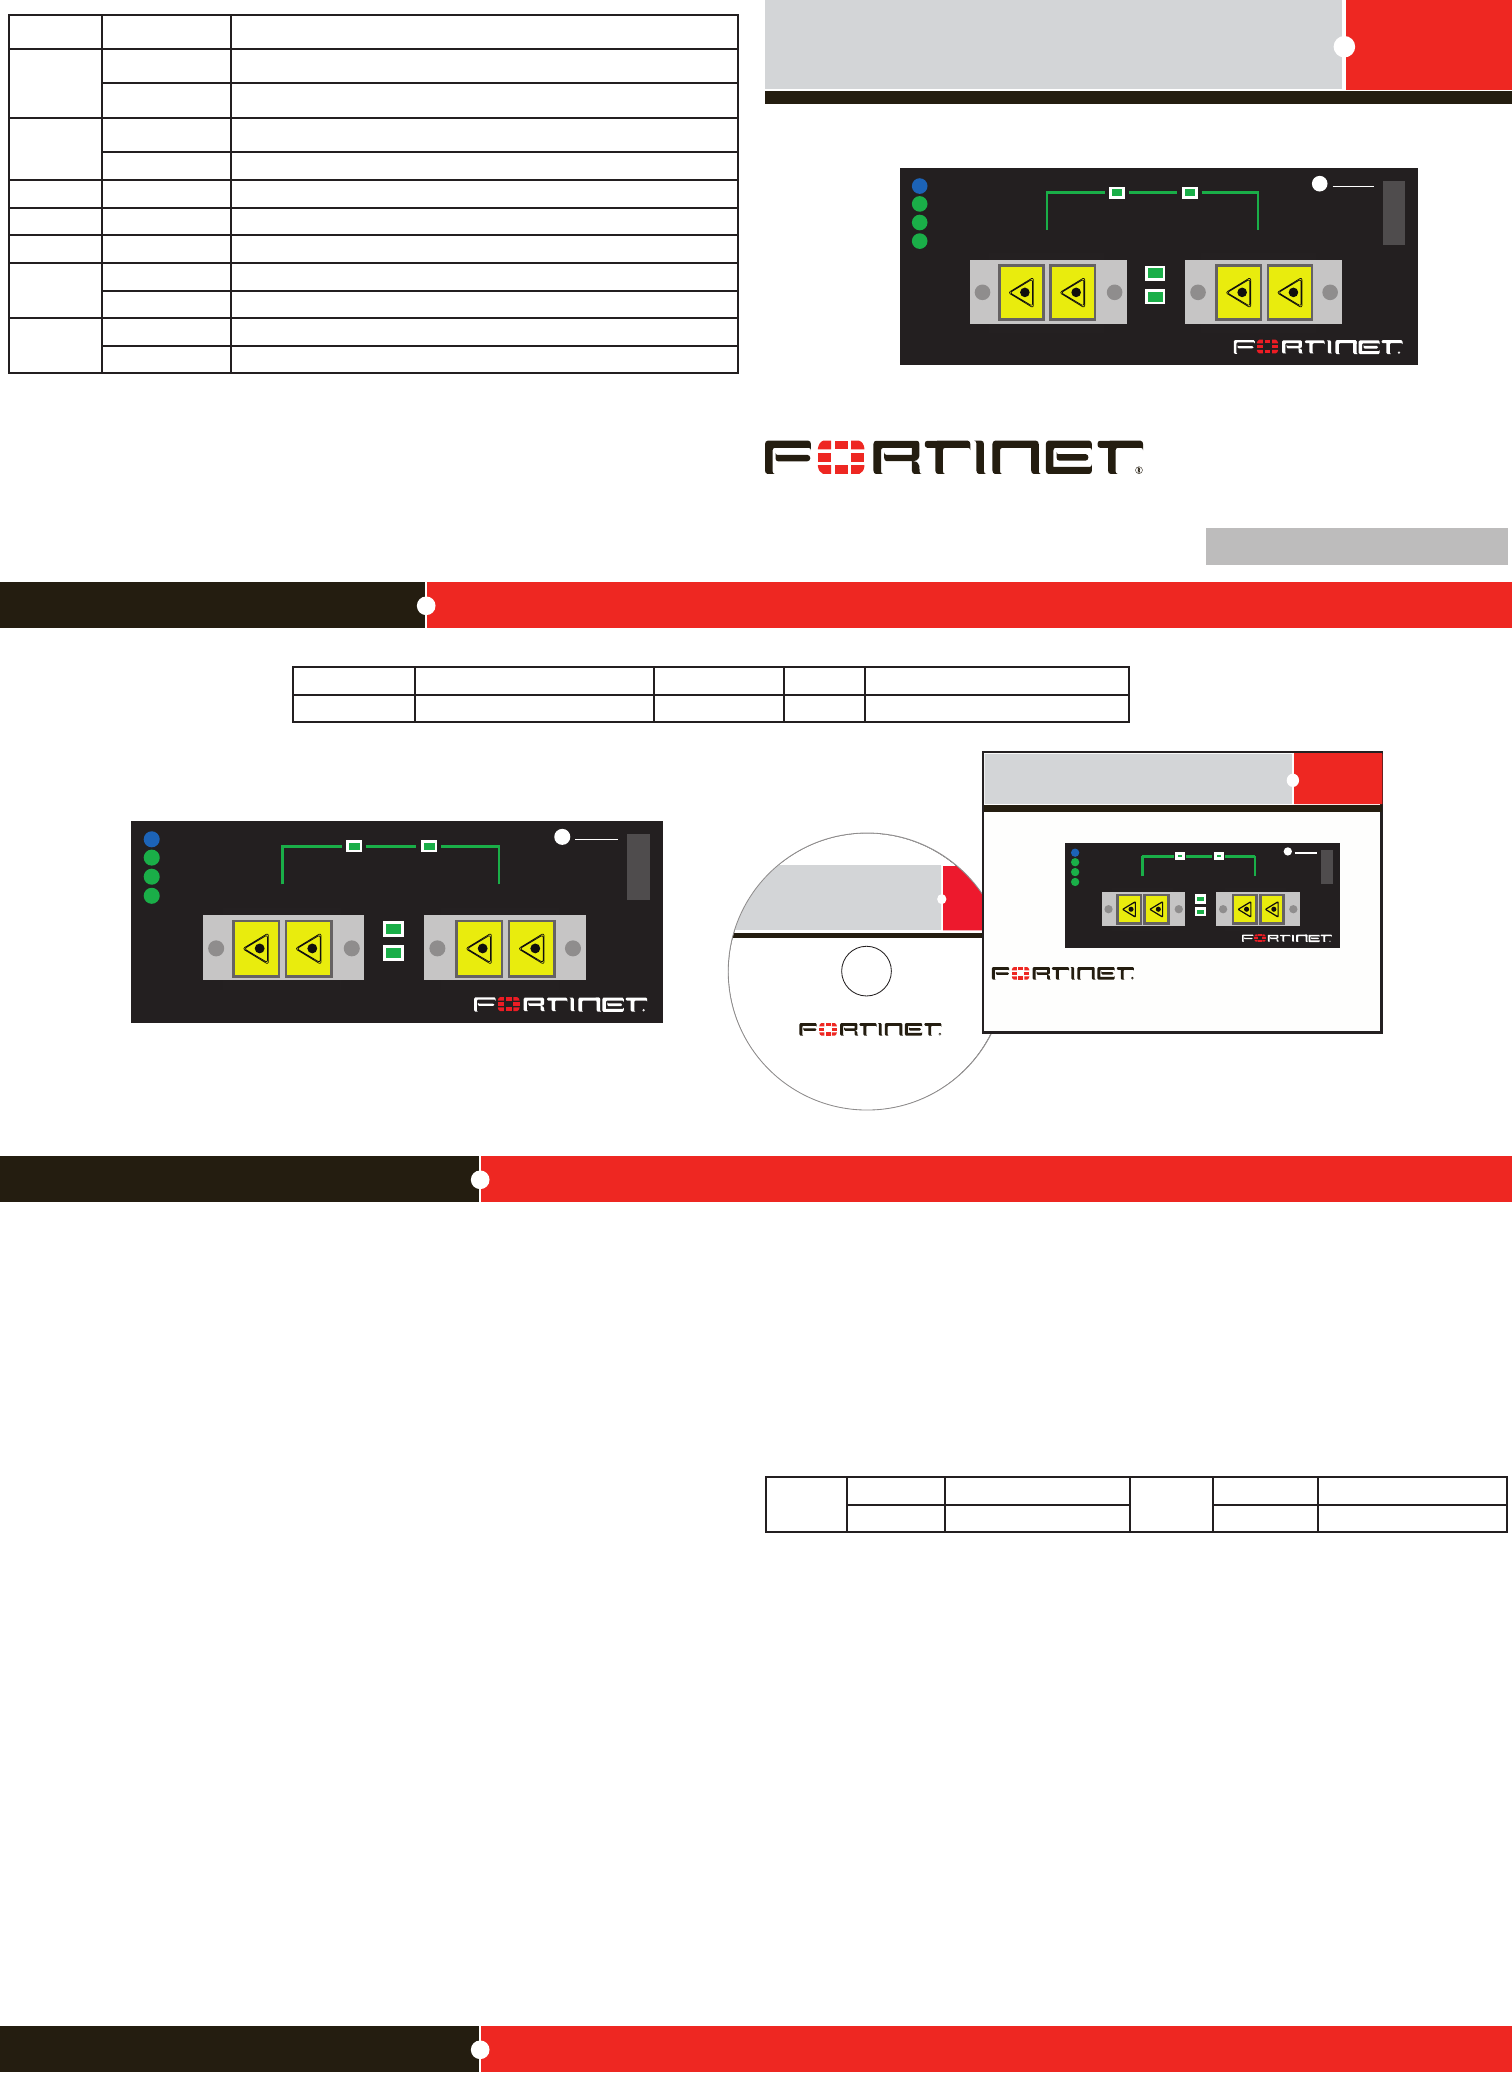 Fortinet Network Card ASM-FX2 User Guide | ManualsOnline com